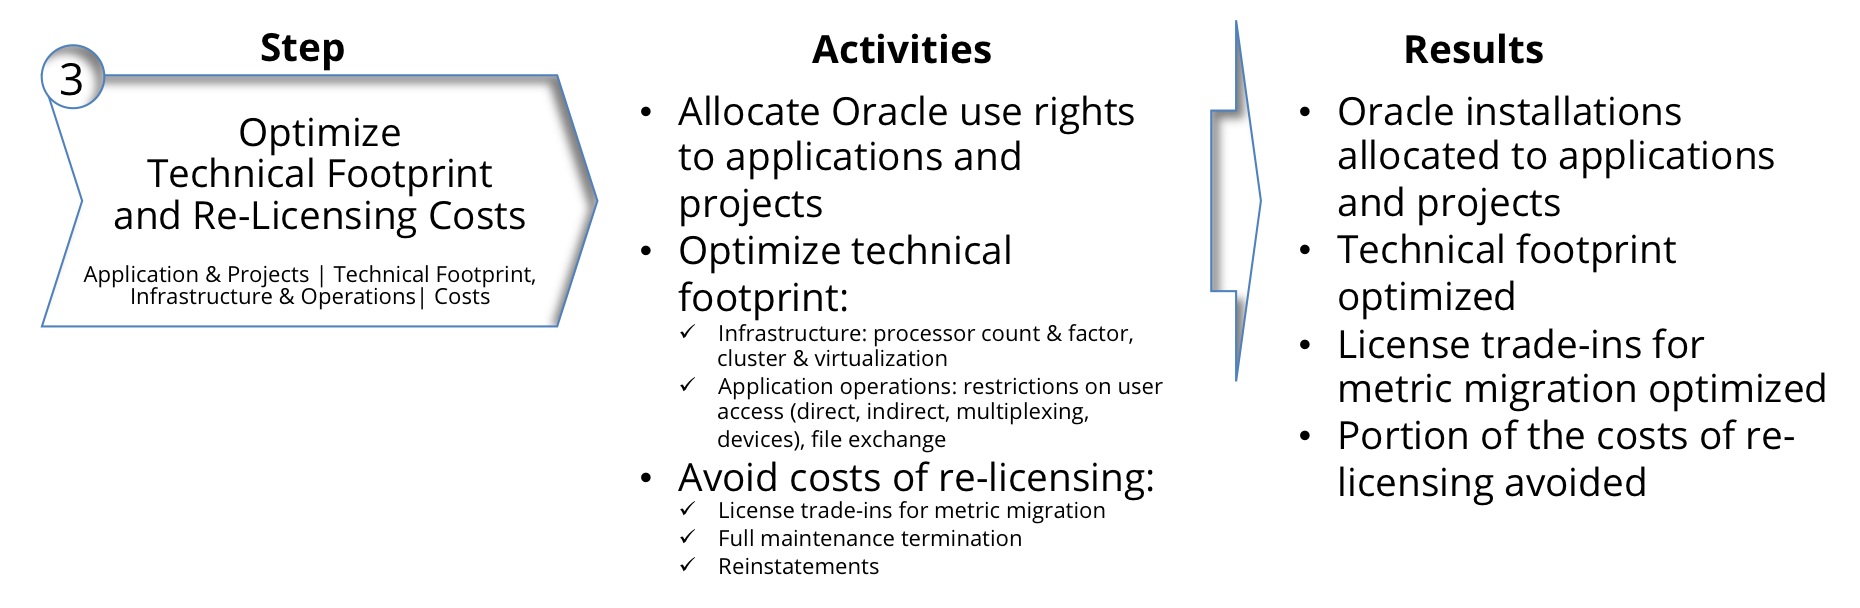 OMTCO - Internal Compliance Audit Of Oracle Database Products - Step 3